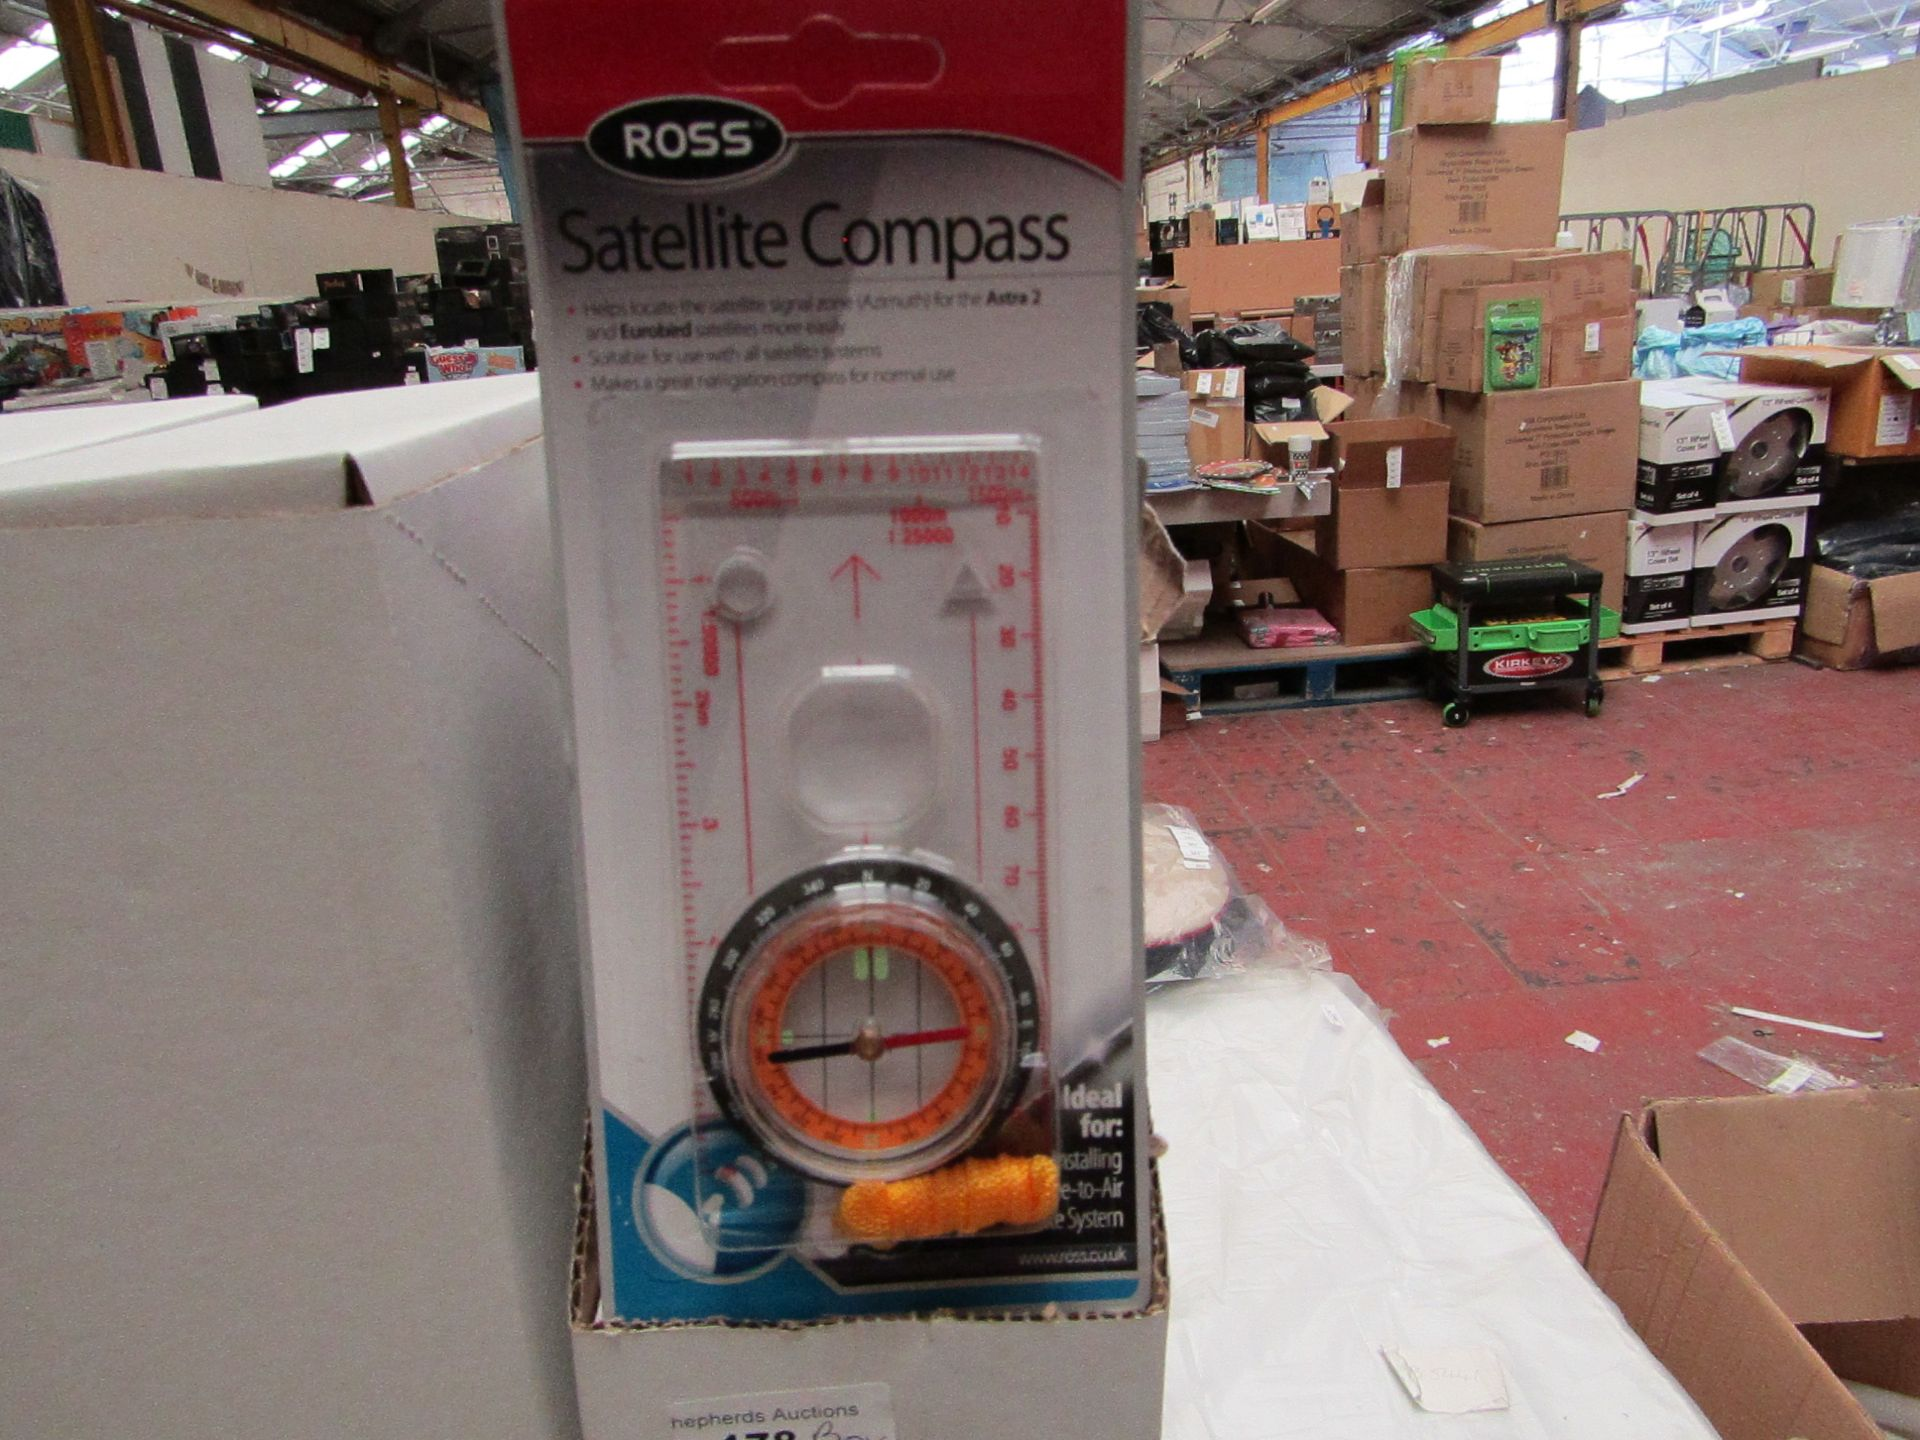 Lot 182 - Box of 10 Ross Satellite Compass'. Unused & Boxed